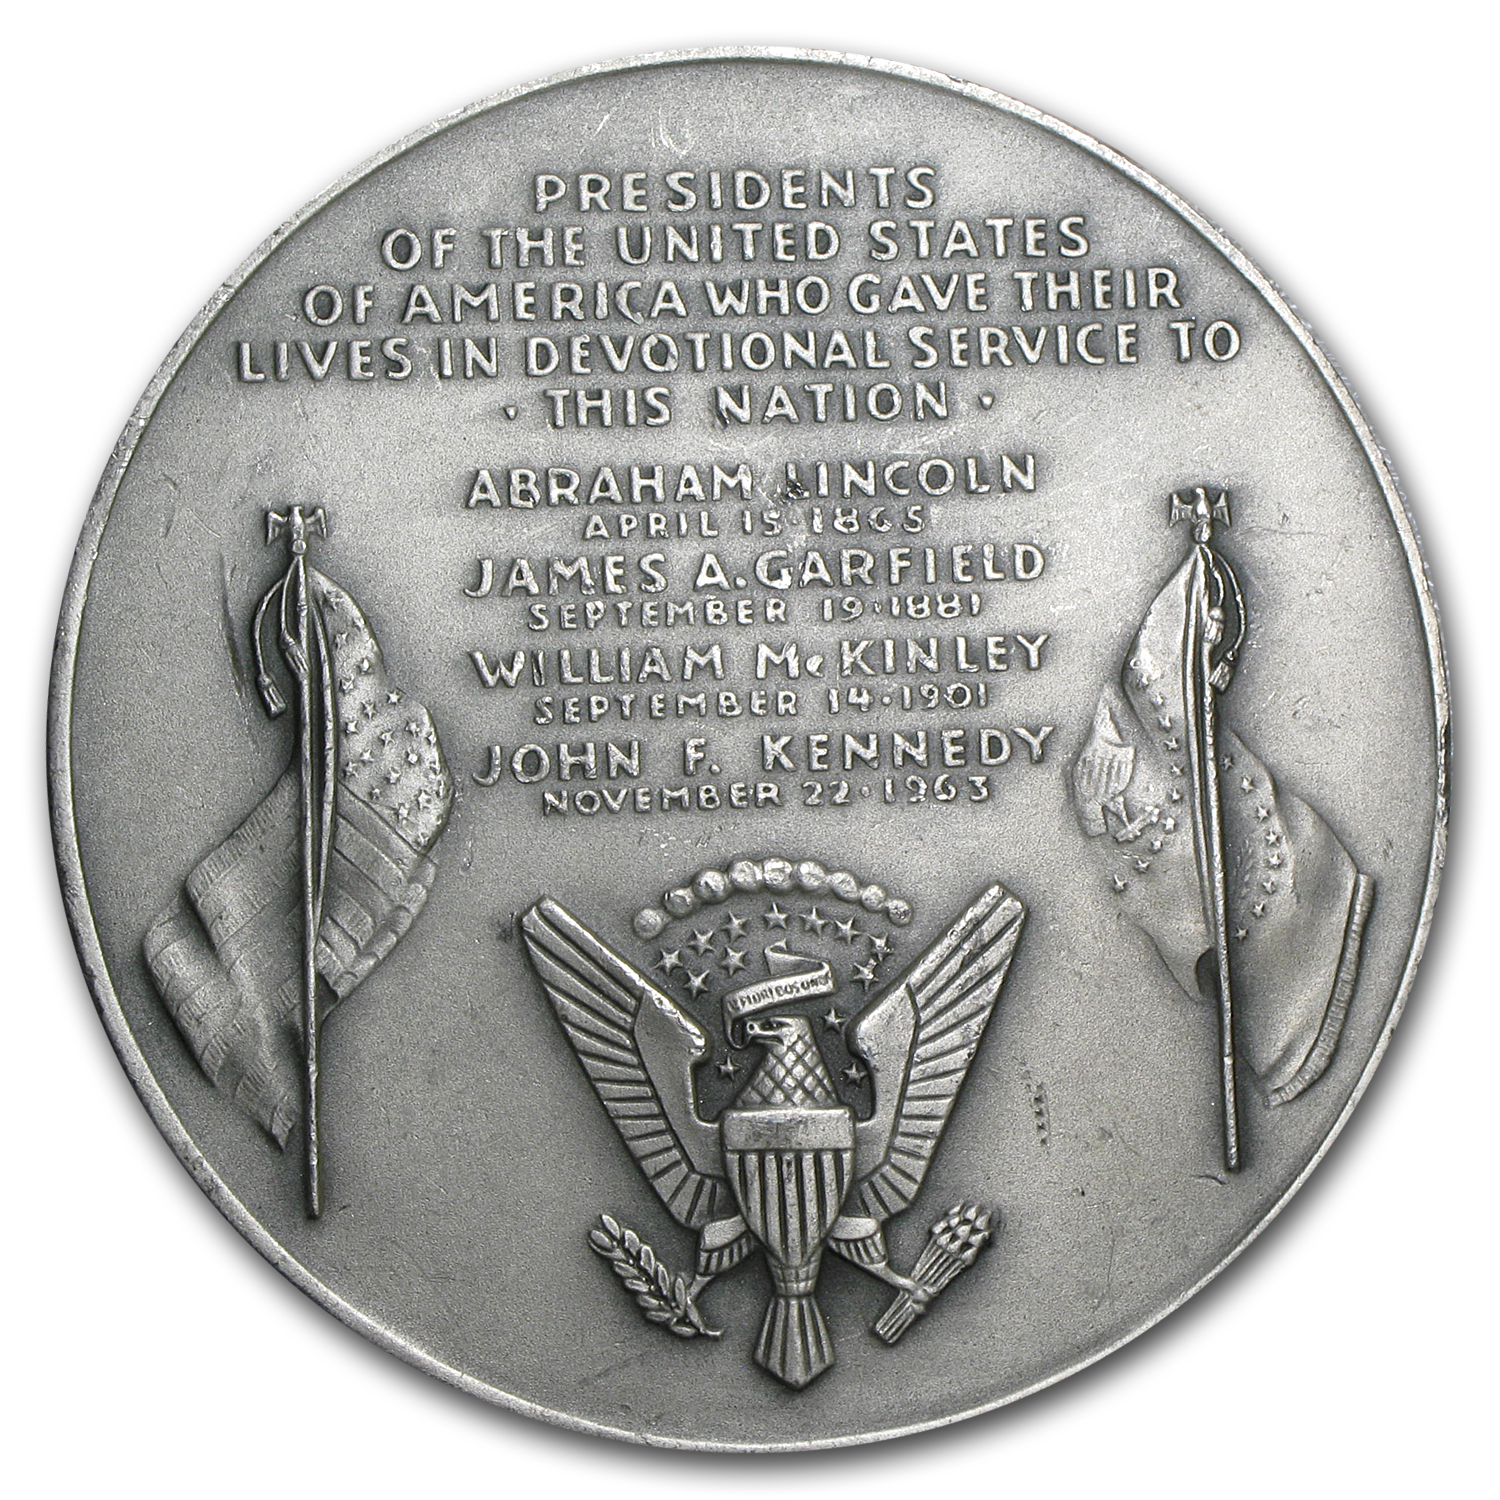 5.08 oz Silver Round - Presidents Who Gave Their Lives